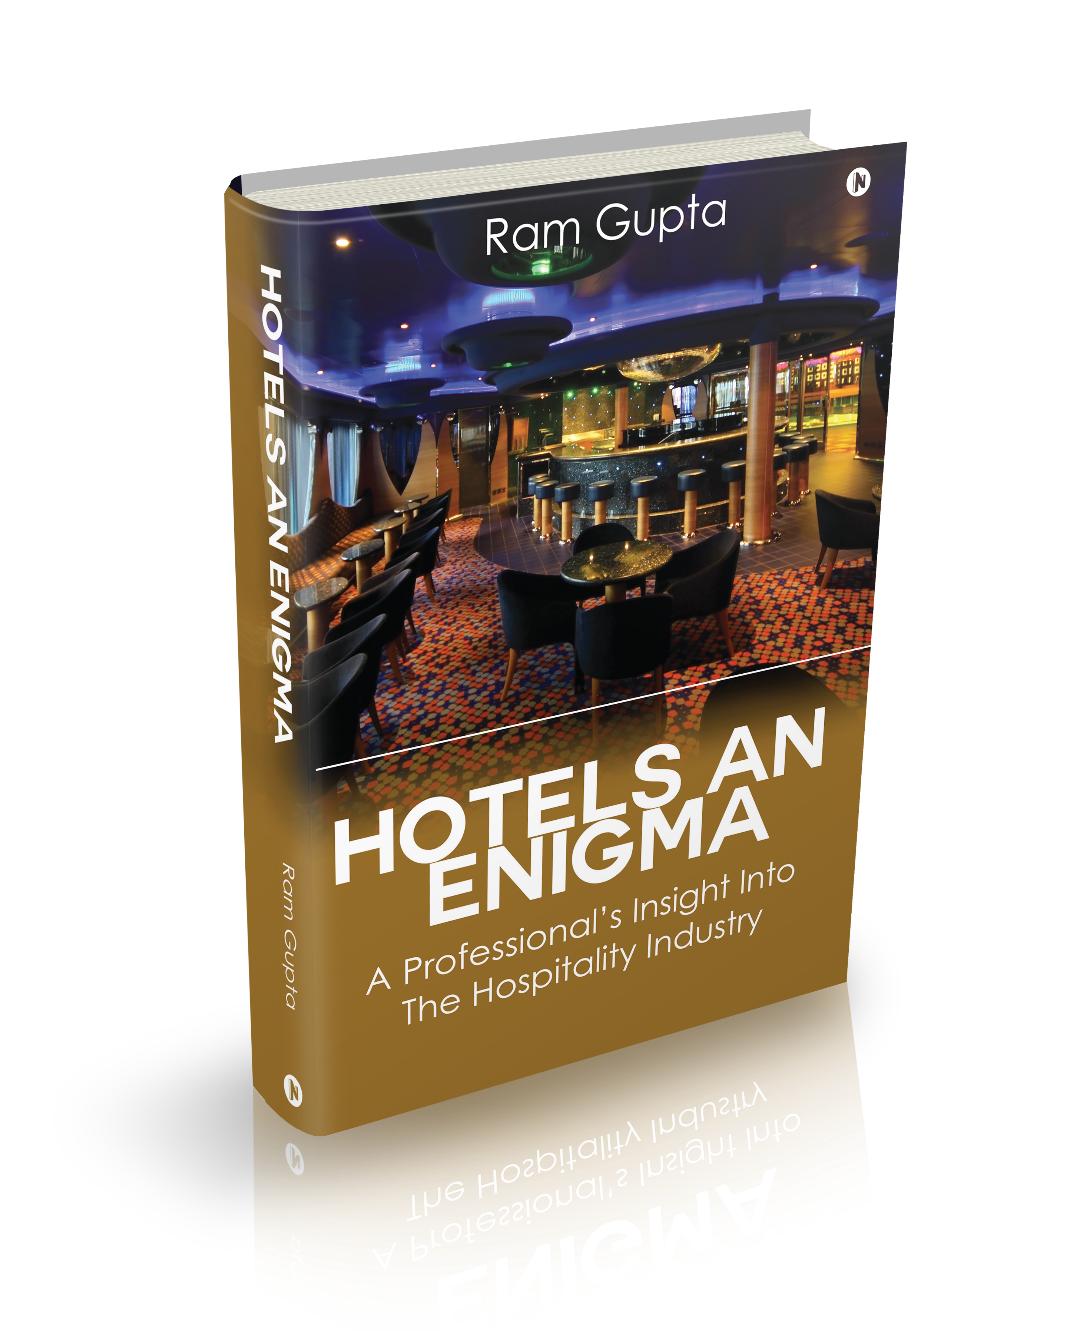 3 Reasons Why 'Hotels – An Enigma' Is A Must Read